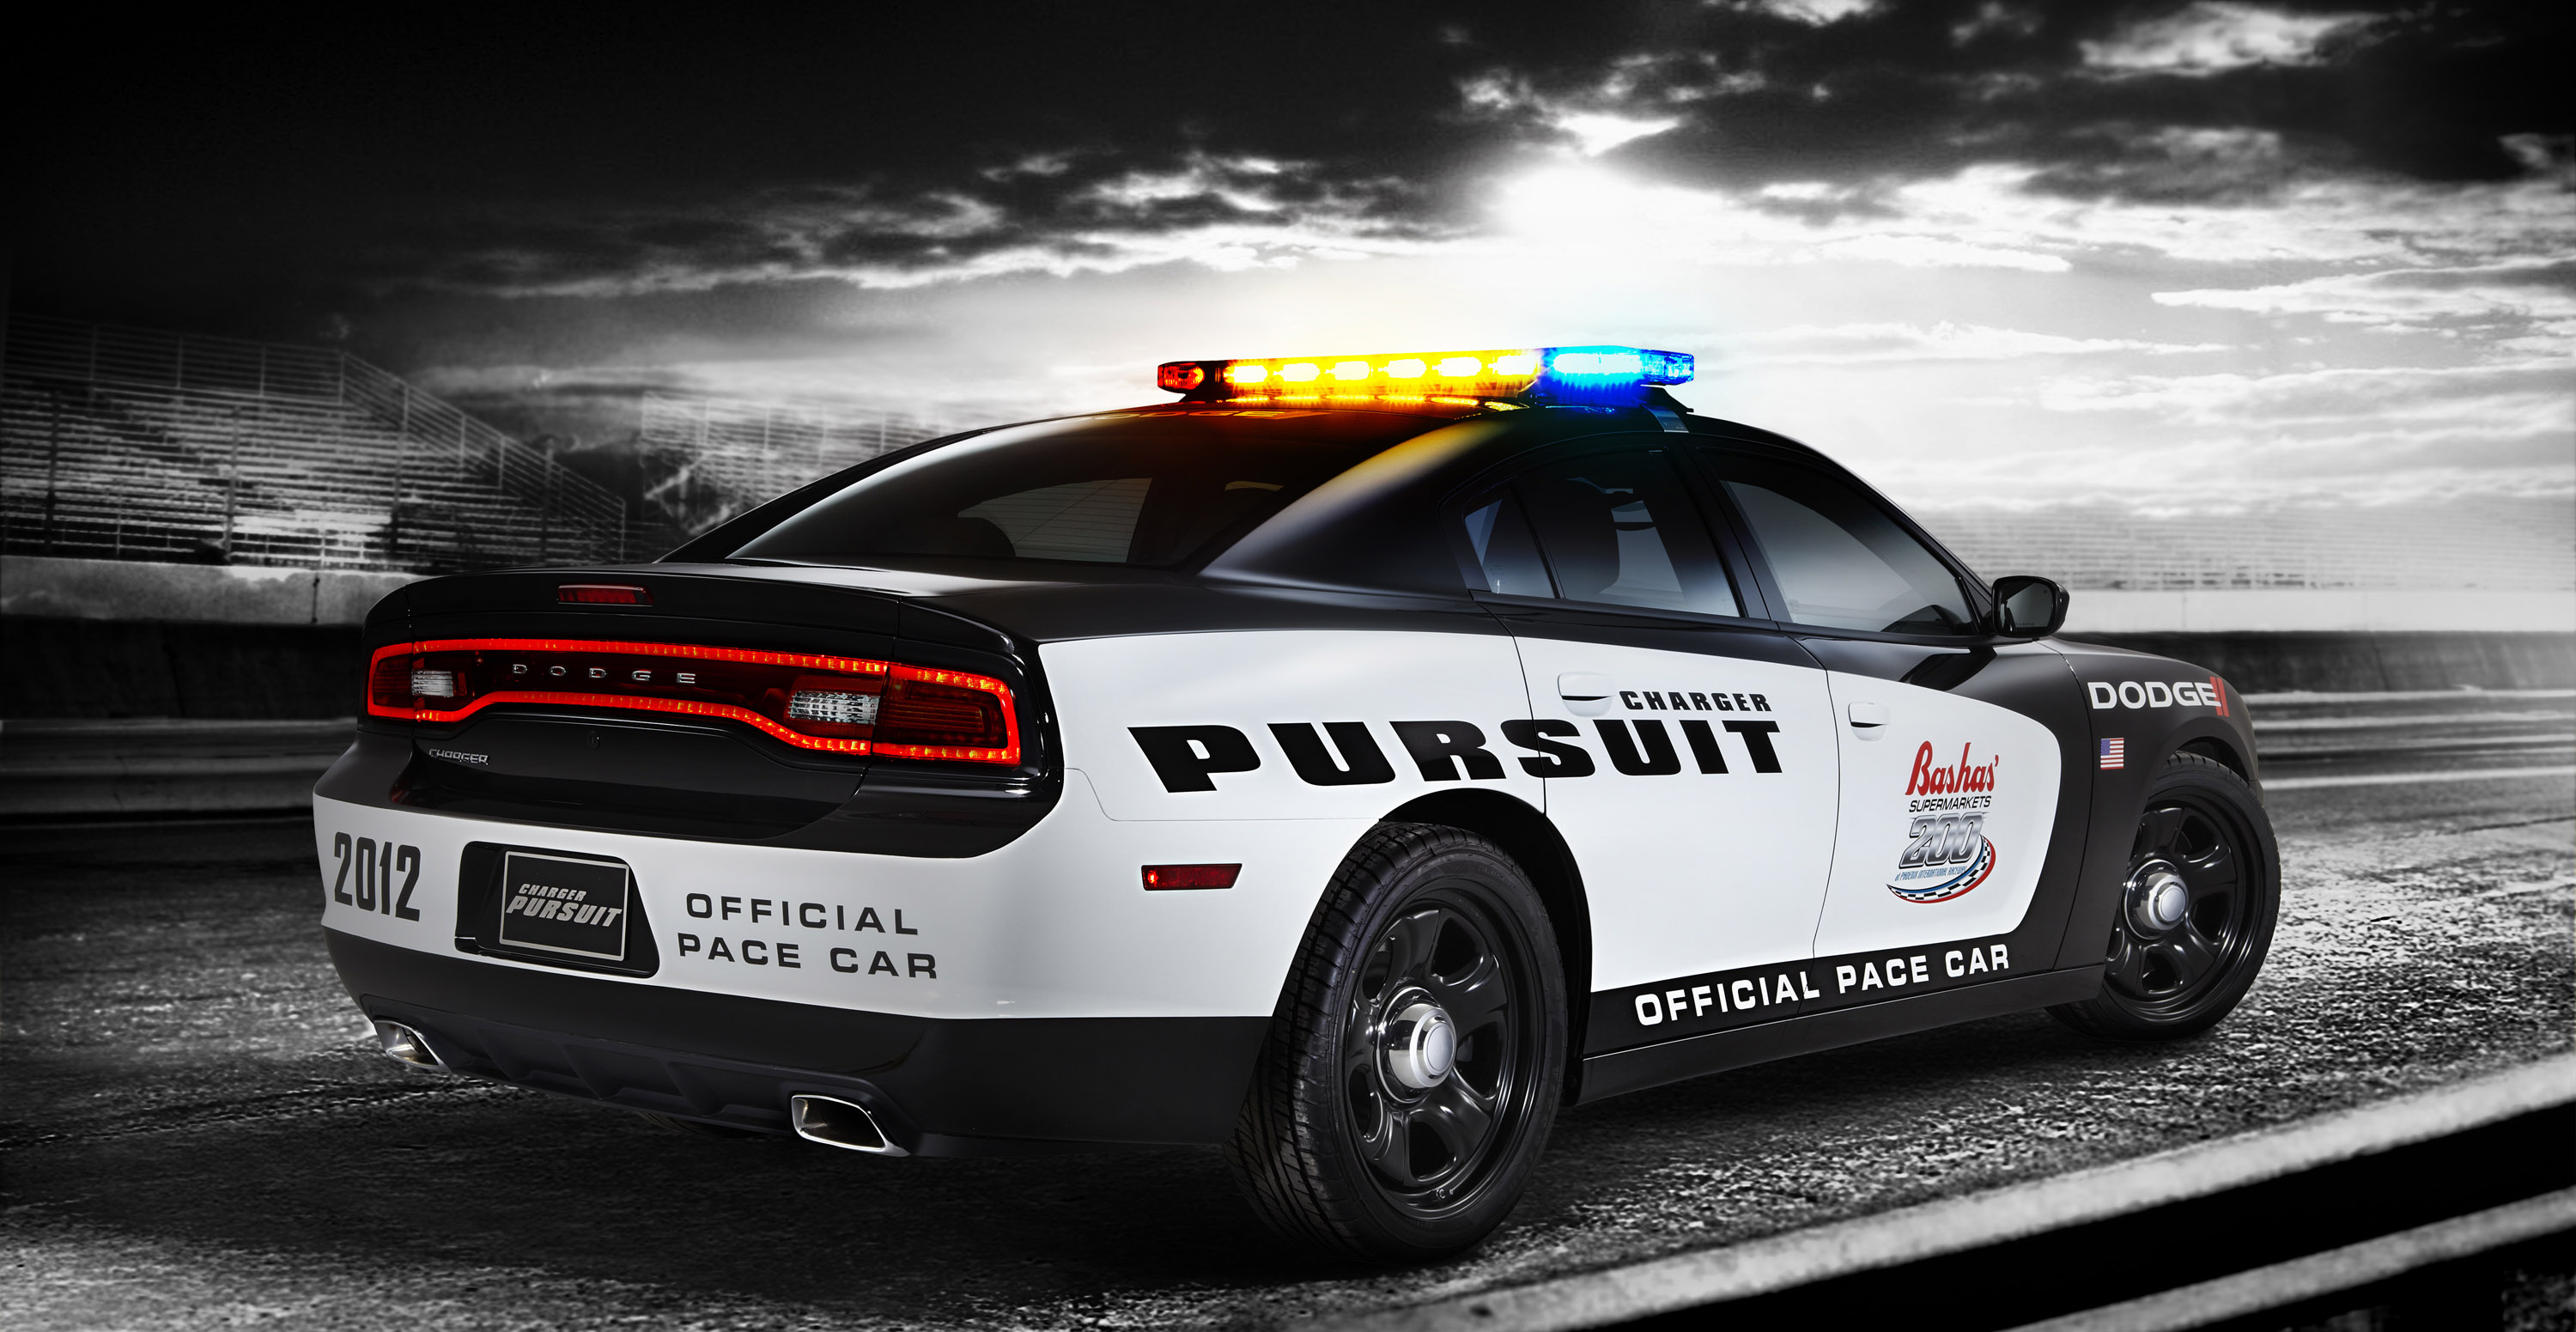 Dodge Charger Car Wallpapers 2012 Dodge Charger Pursuit